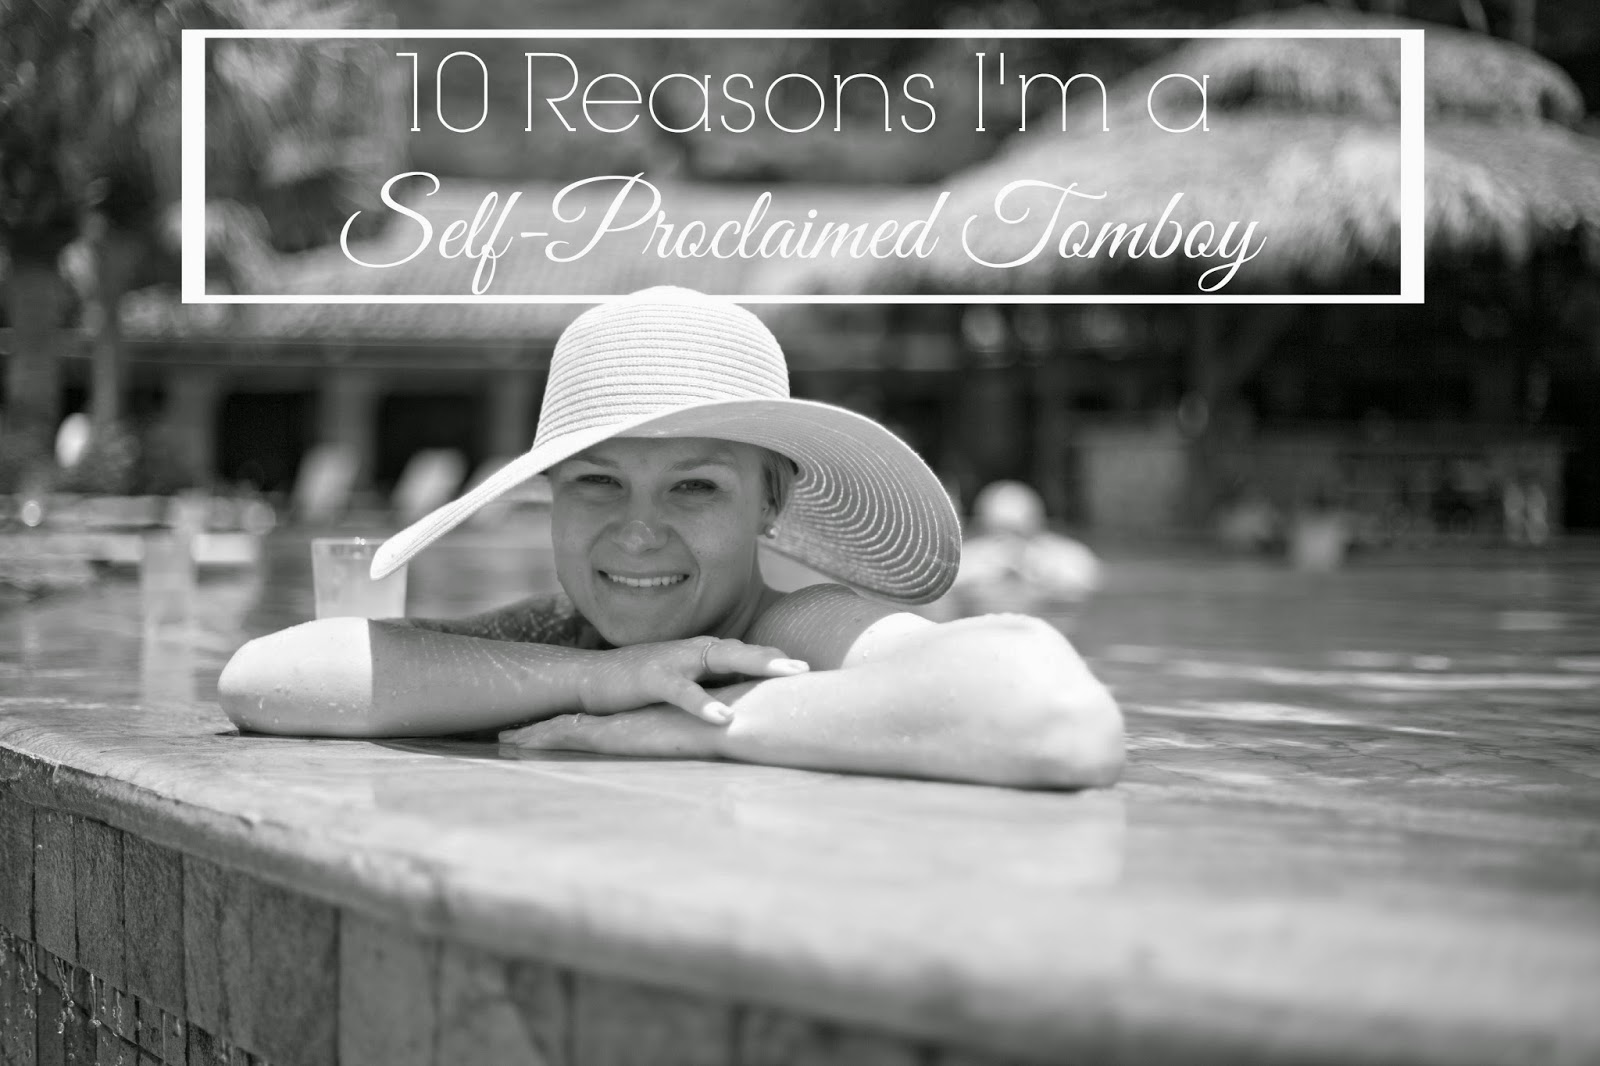 10 Reasons I'm a Self-Proclaimed Tomboy